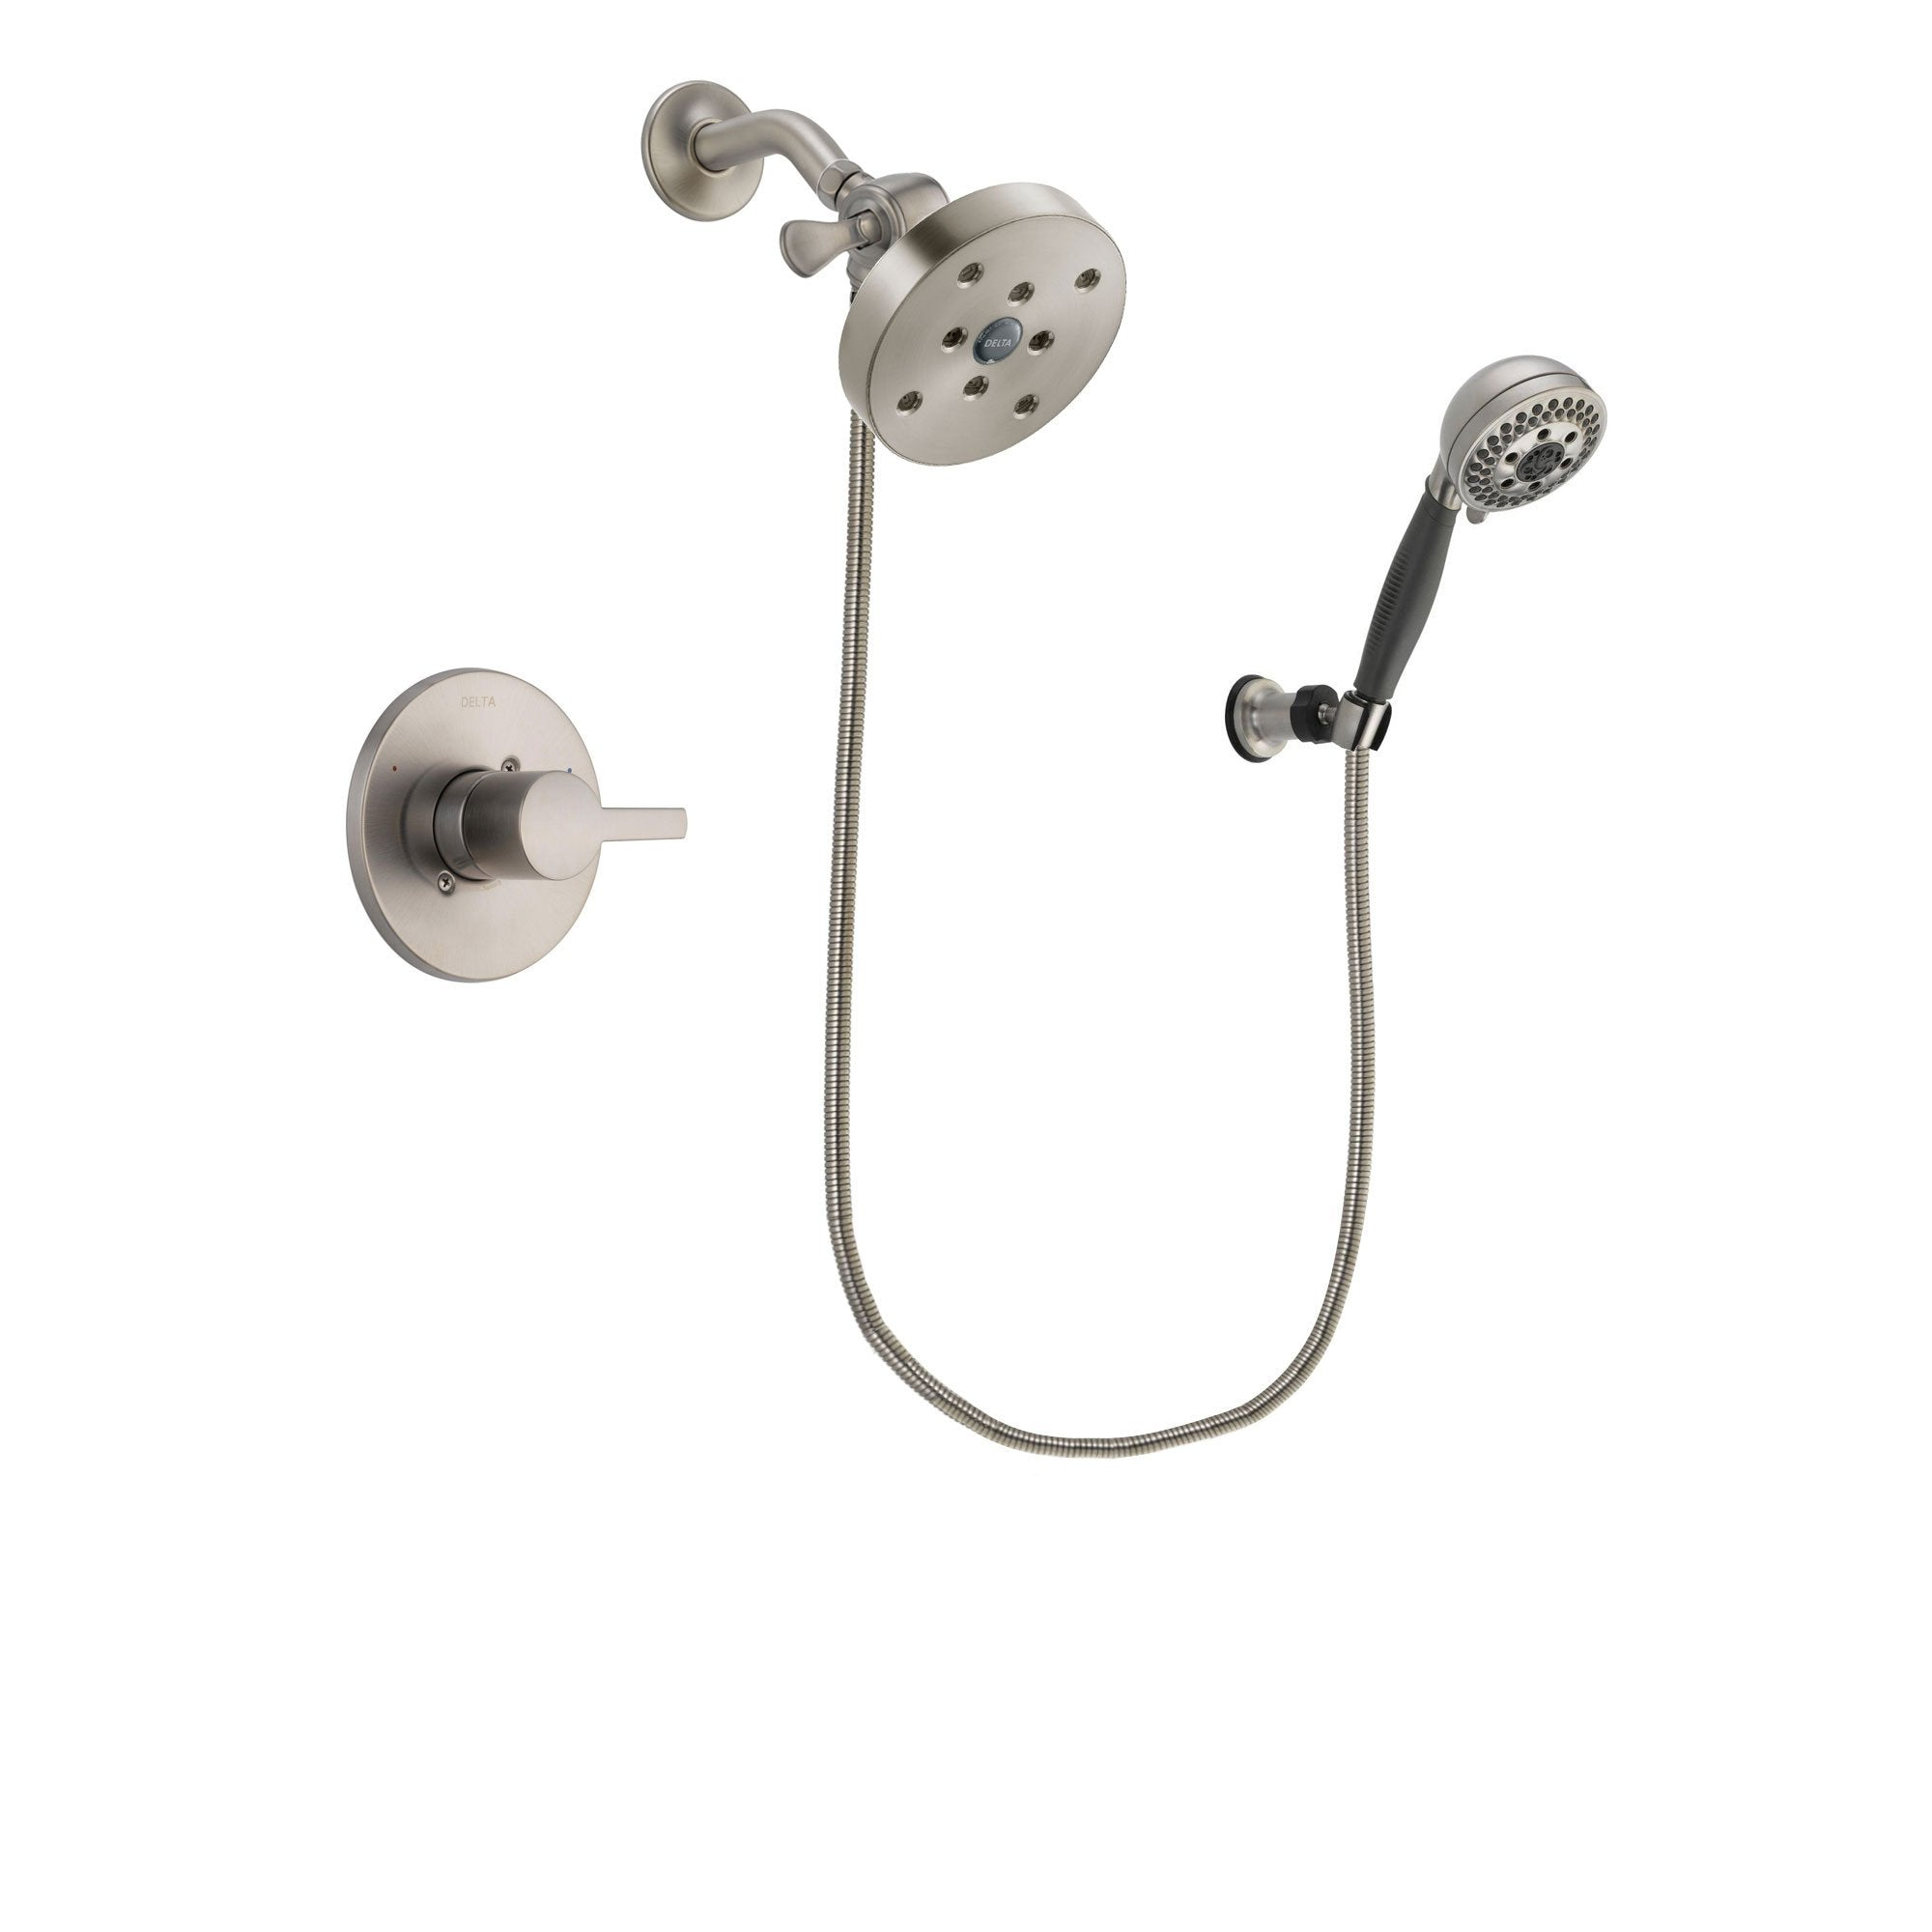 Delta Compel Stainless Steel Finish Shower Faucet System w/ Hand Spray DSP2038V